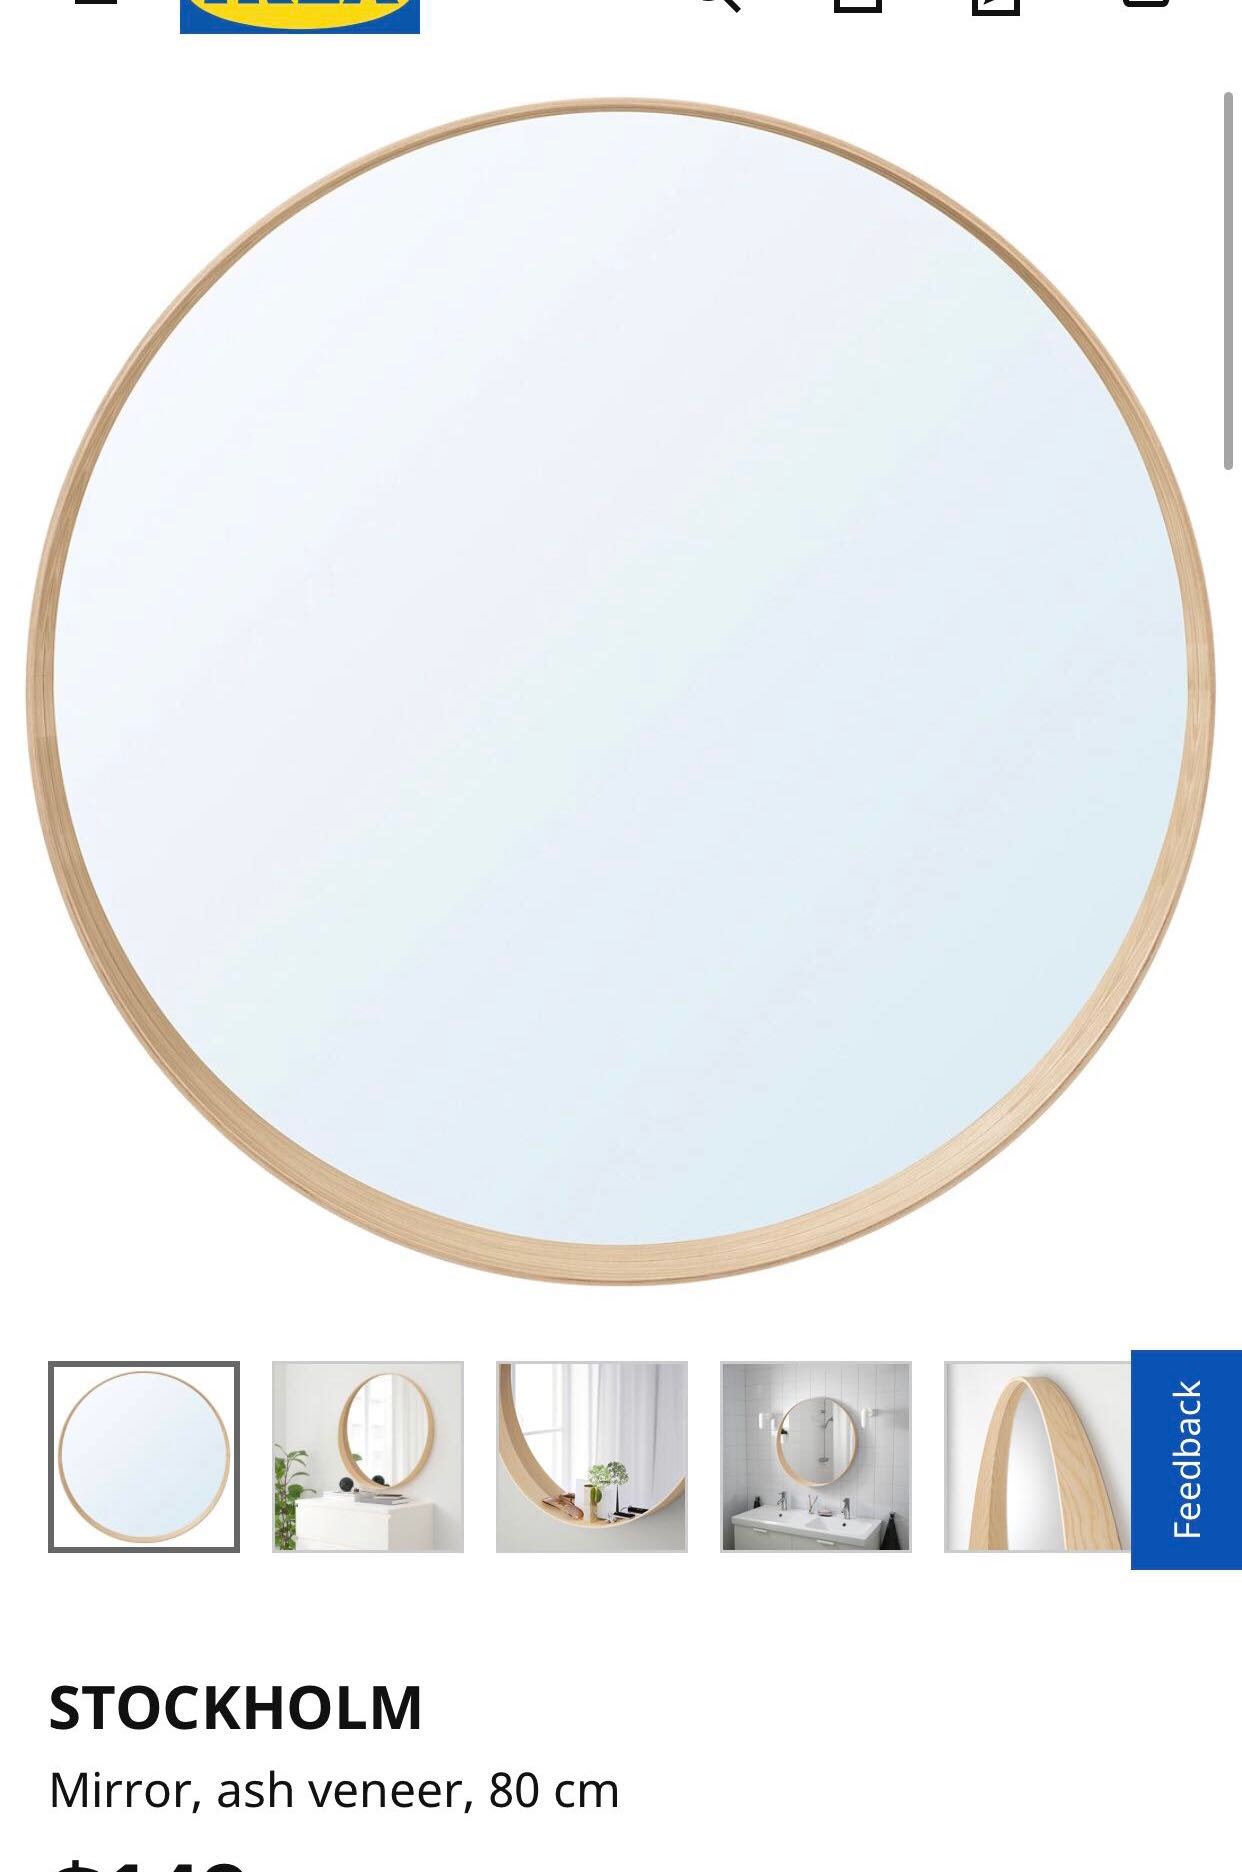 Ikea Stockholm Mirror 80cm Round Furniture Others On Carousell